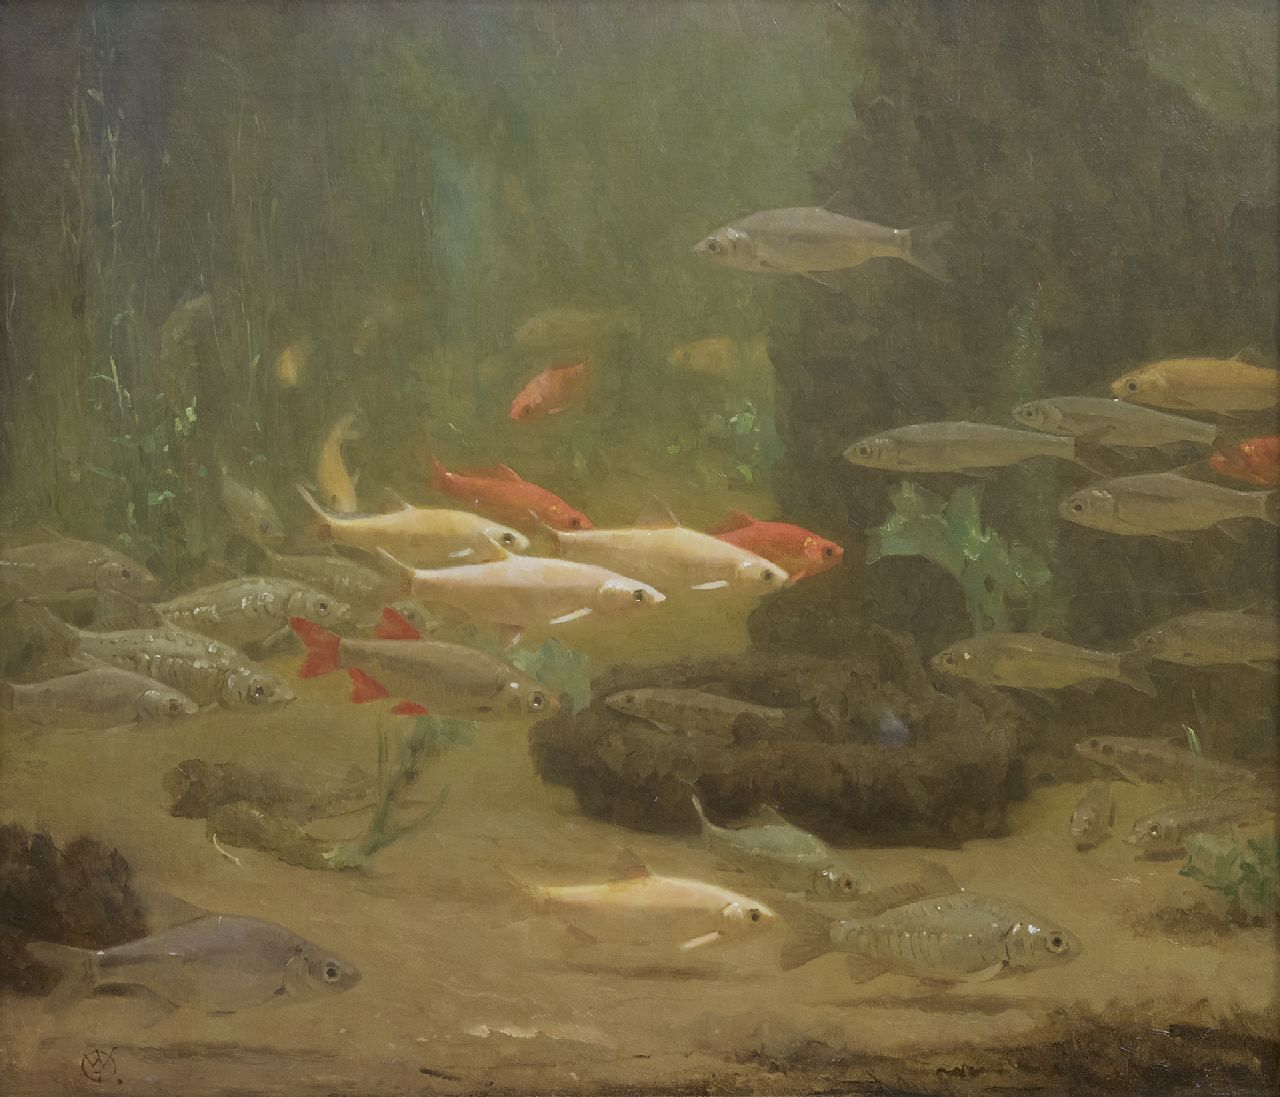 Dijsselhof G.W.  | Gerrit Willem Dijsselhof | Paintings offered for sale | Goldfish, oil on canvas 45.0 x 51.0 cm, signed l.l. with Monogram